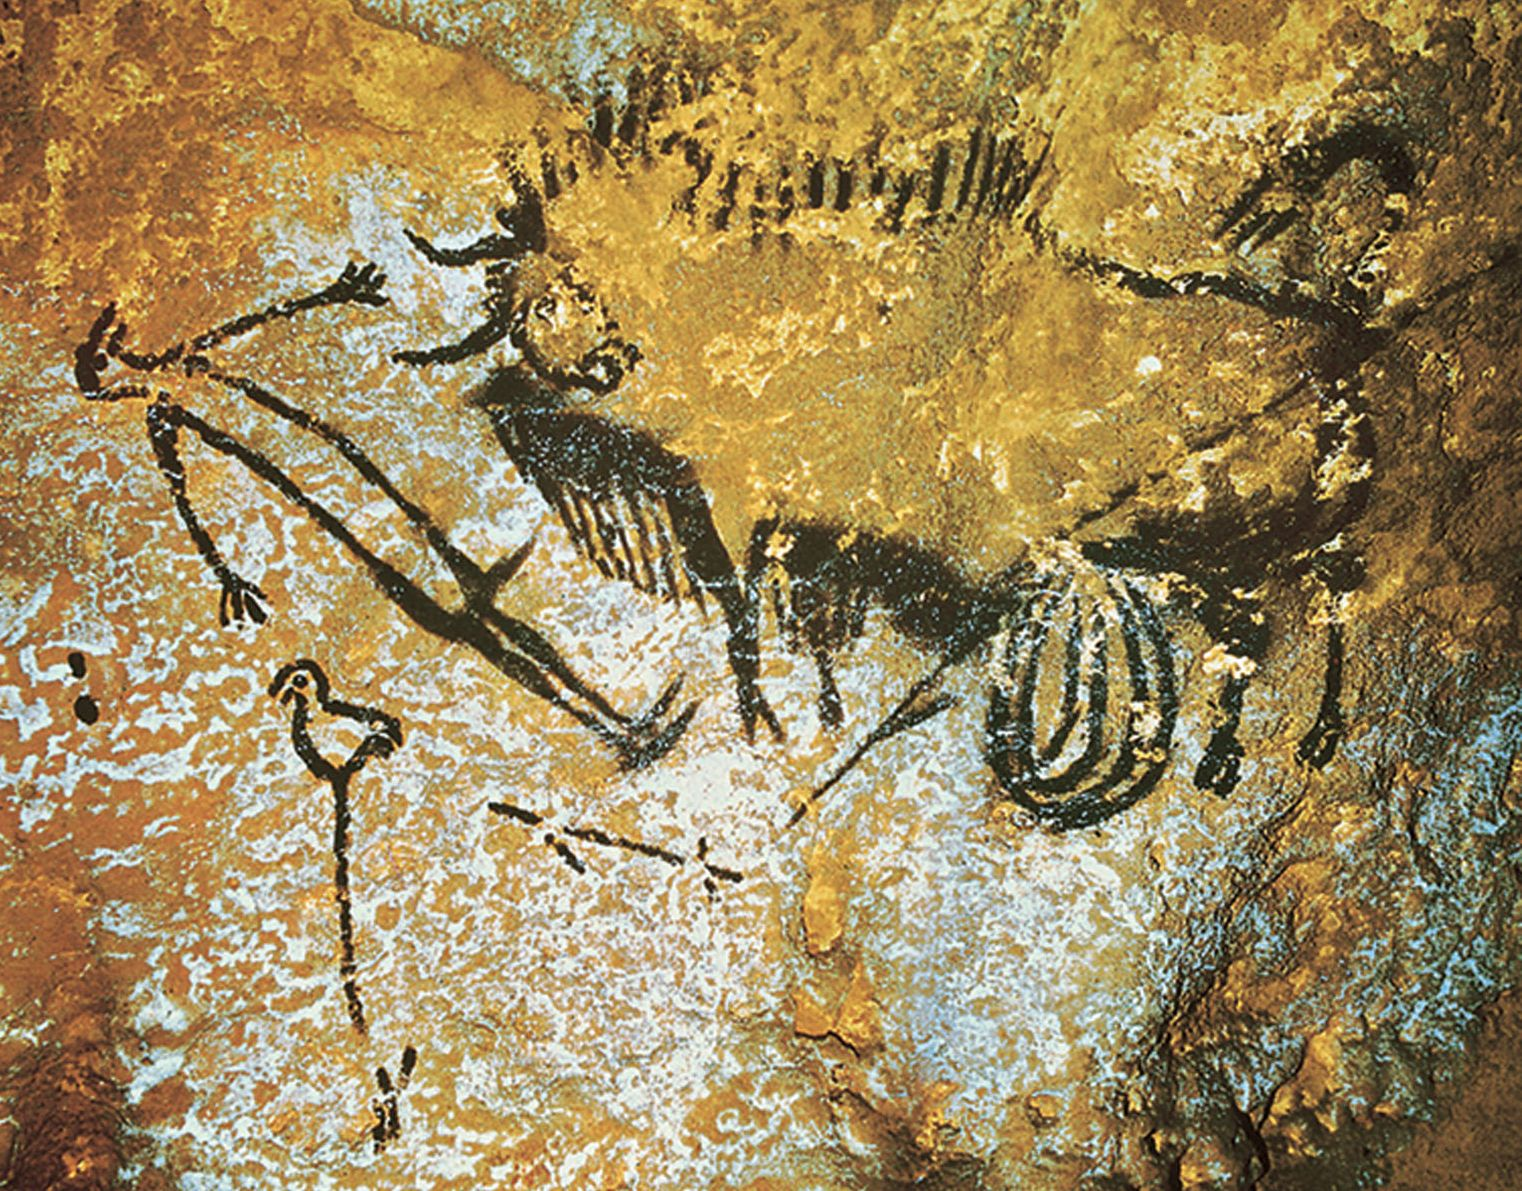 an analysis of the art the cave in lascaux Carbon isotope analysis of charcoal used in pictures of horses at chauvet,   when pablo picasso visited the newly-discovered lascaux caves,.